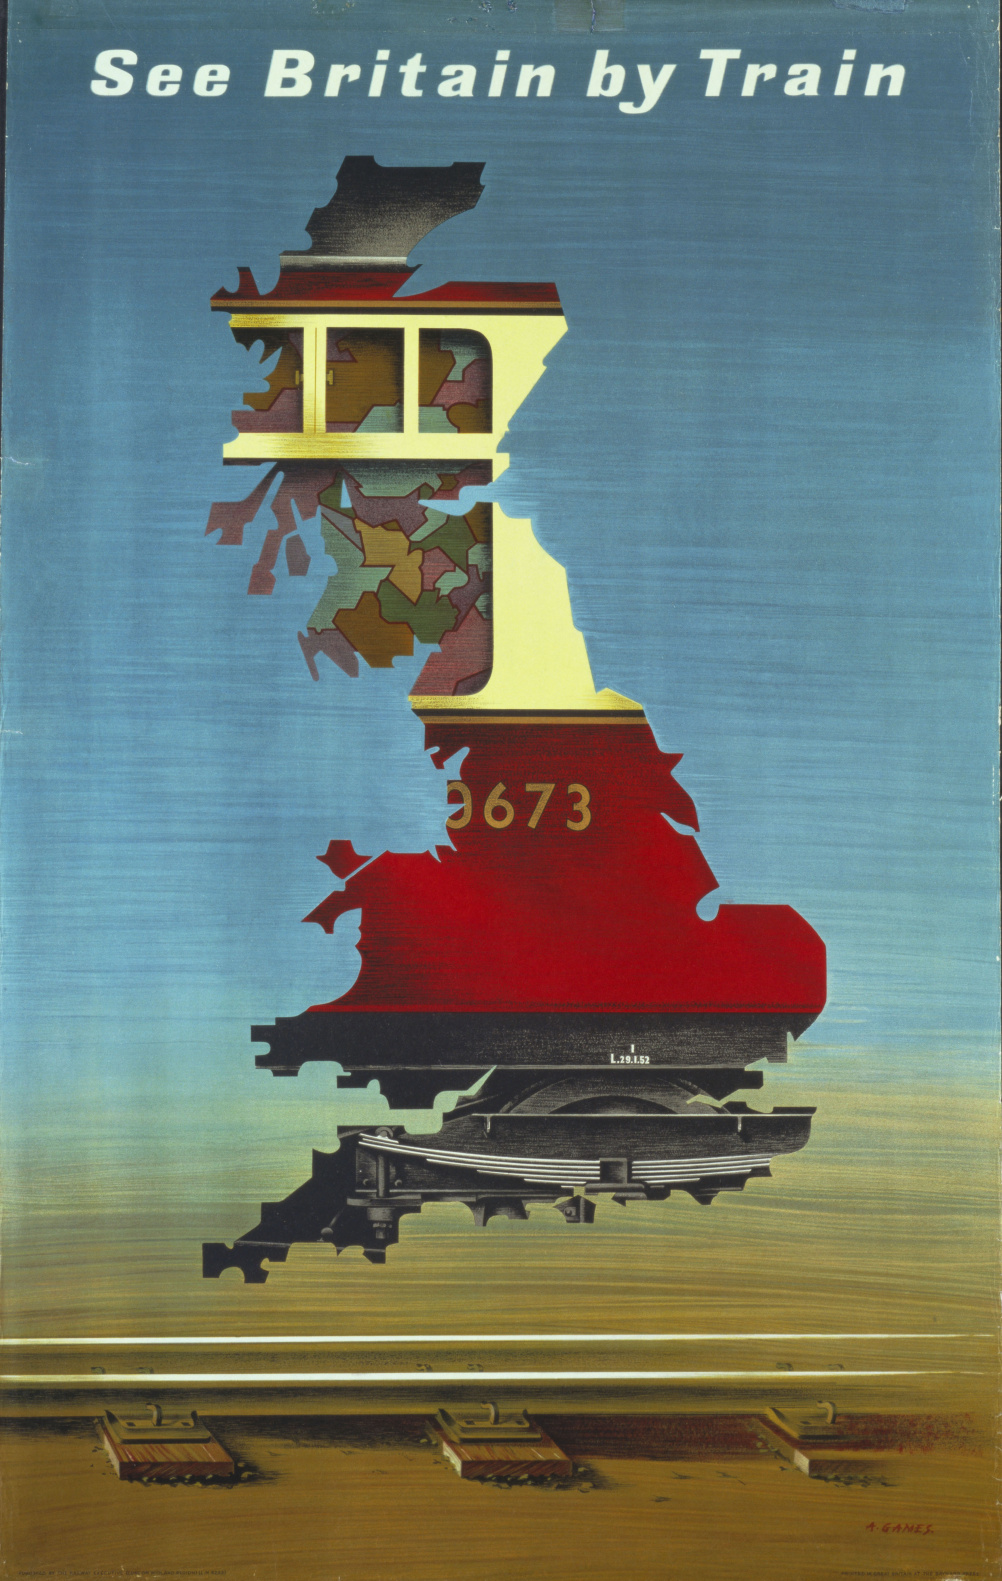 See Britain by Train, 1951 Abram Games